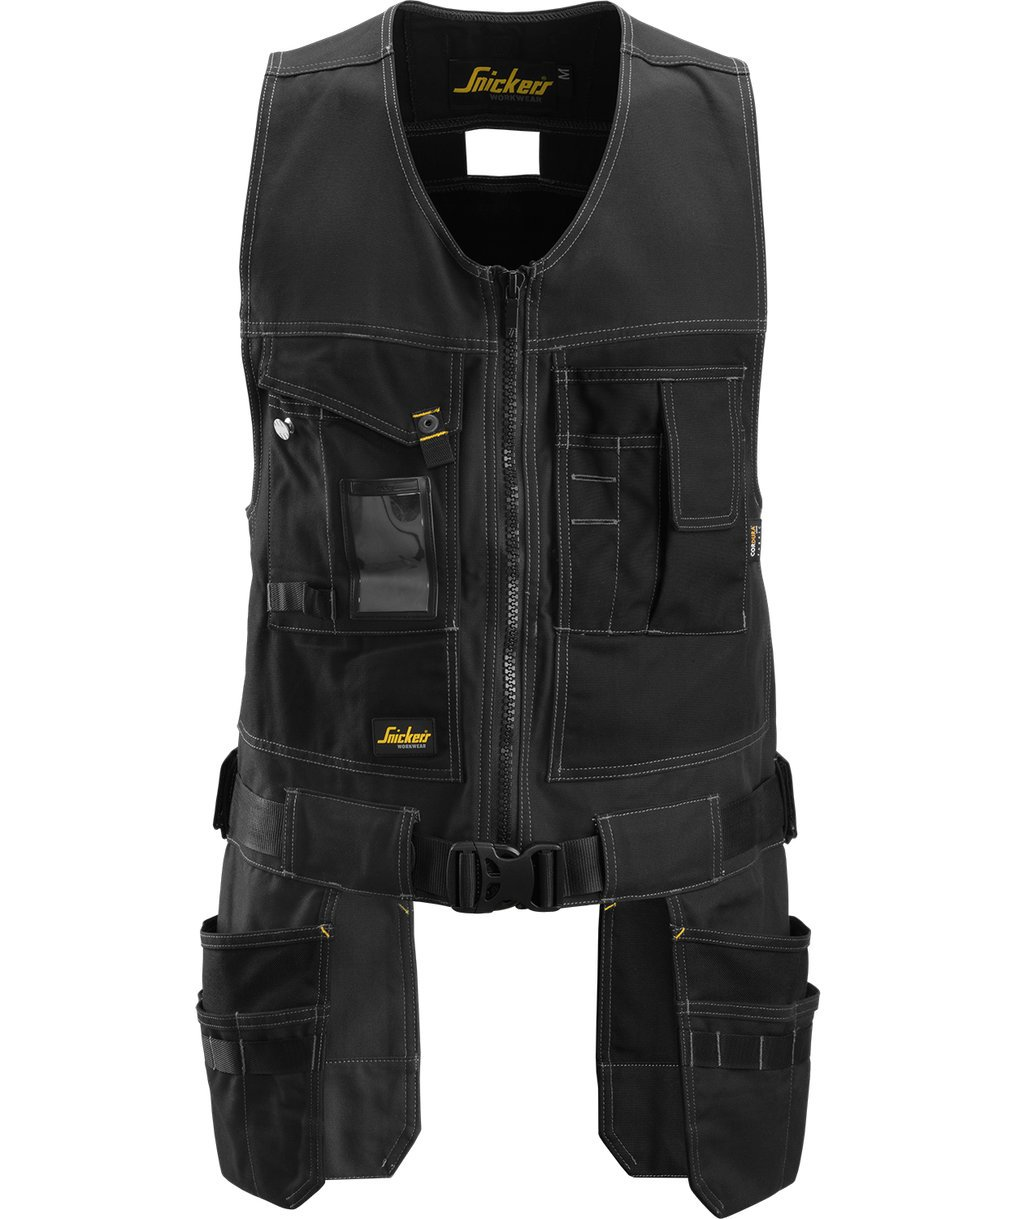 Snickers craftsmens waistcoat, Canvas+, Black/Black